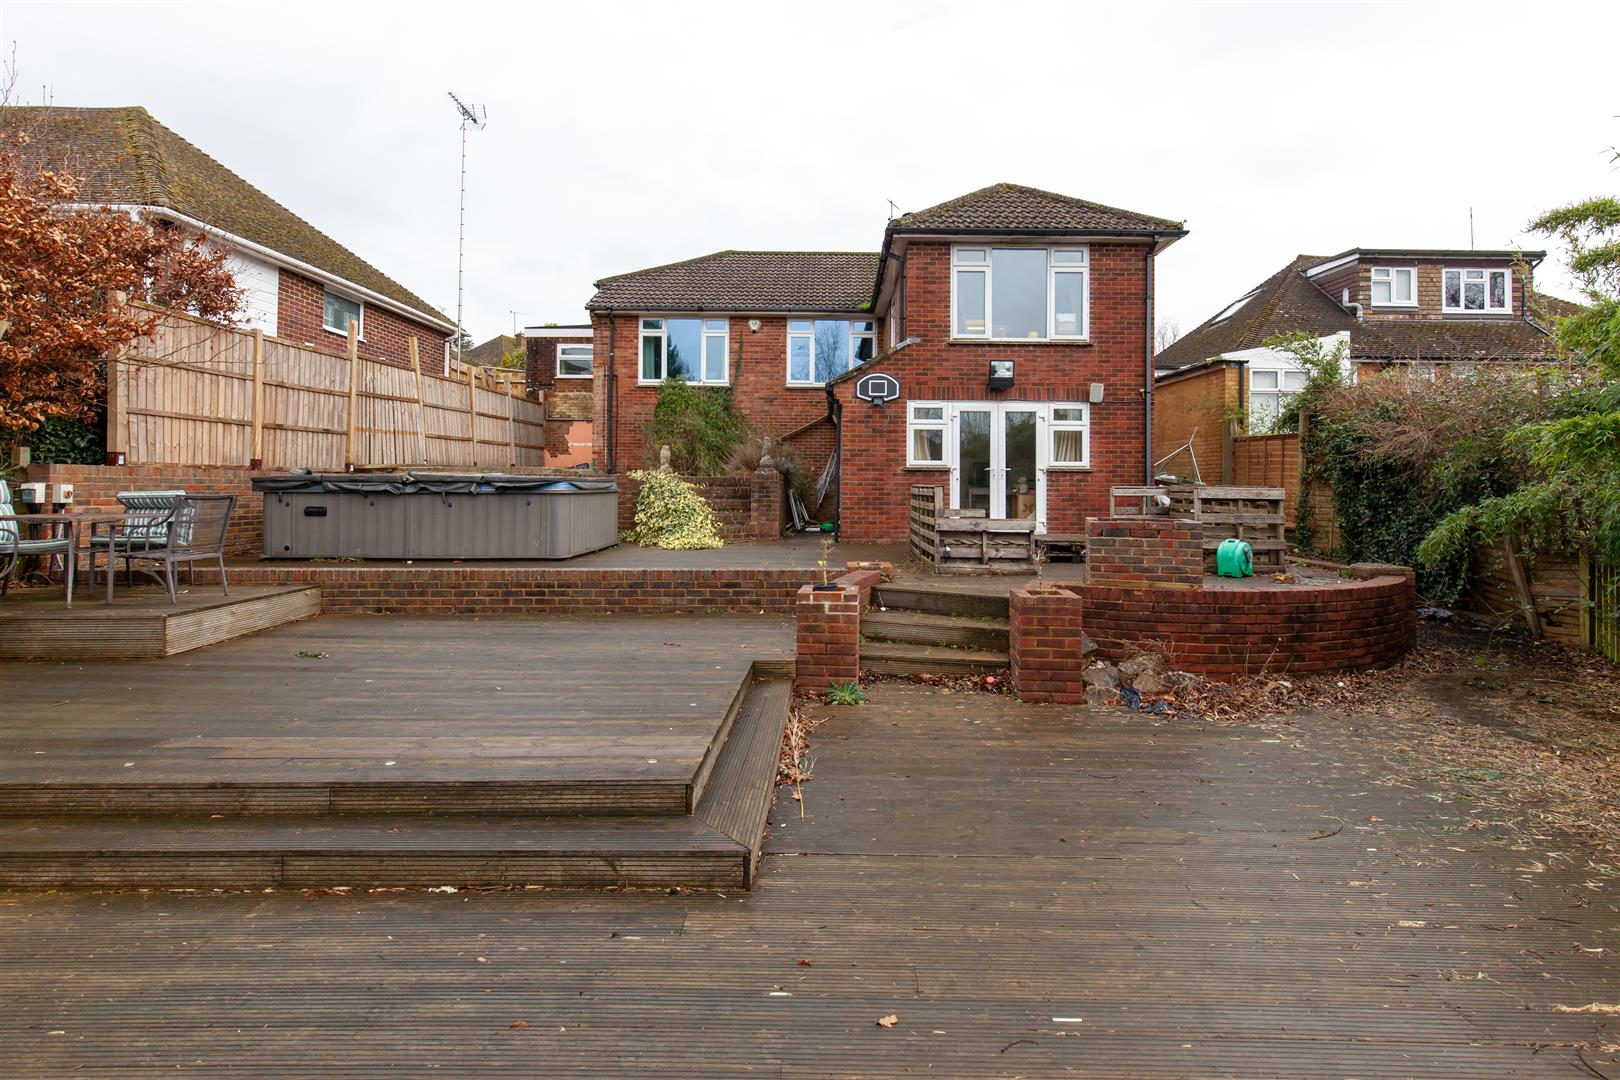 4 bed detached bungalow for sale in Gorselands, Battle  - Property Image 29